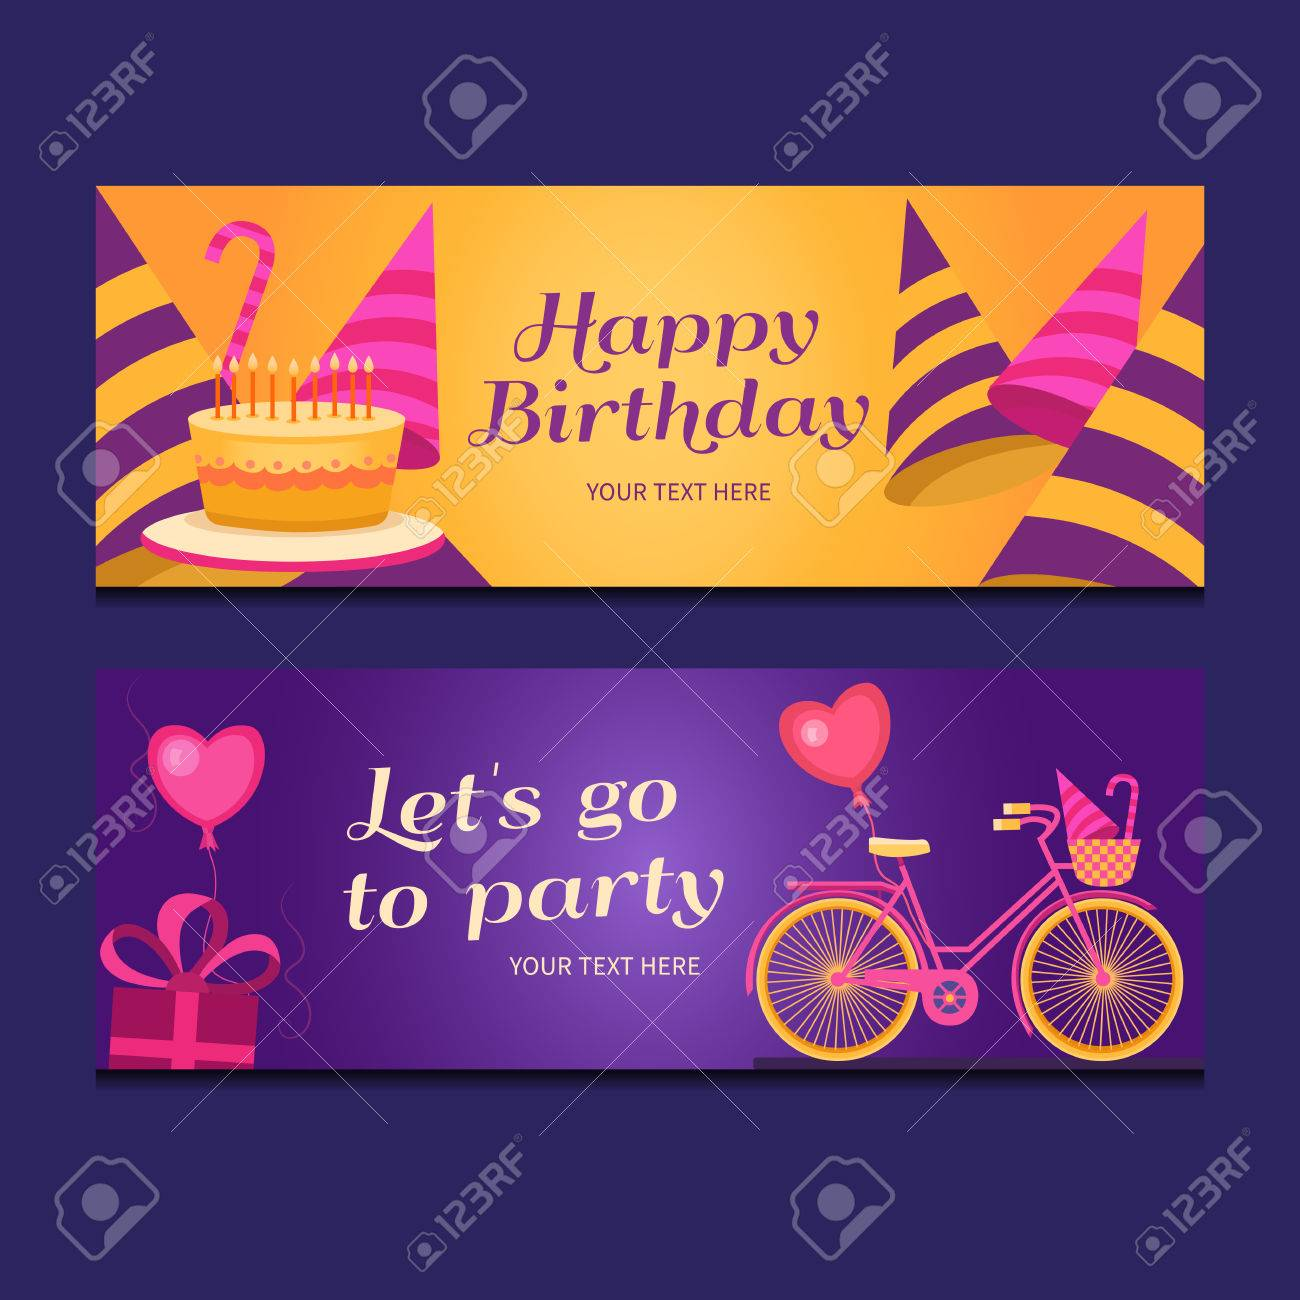 happy birthday sign template ; 62504916-happy-birthday-banners-collection-set-of-greeting-templates-invitation-cards-to-the-party-vector-car